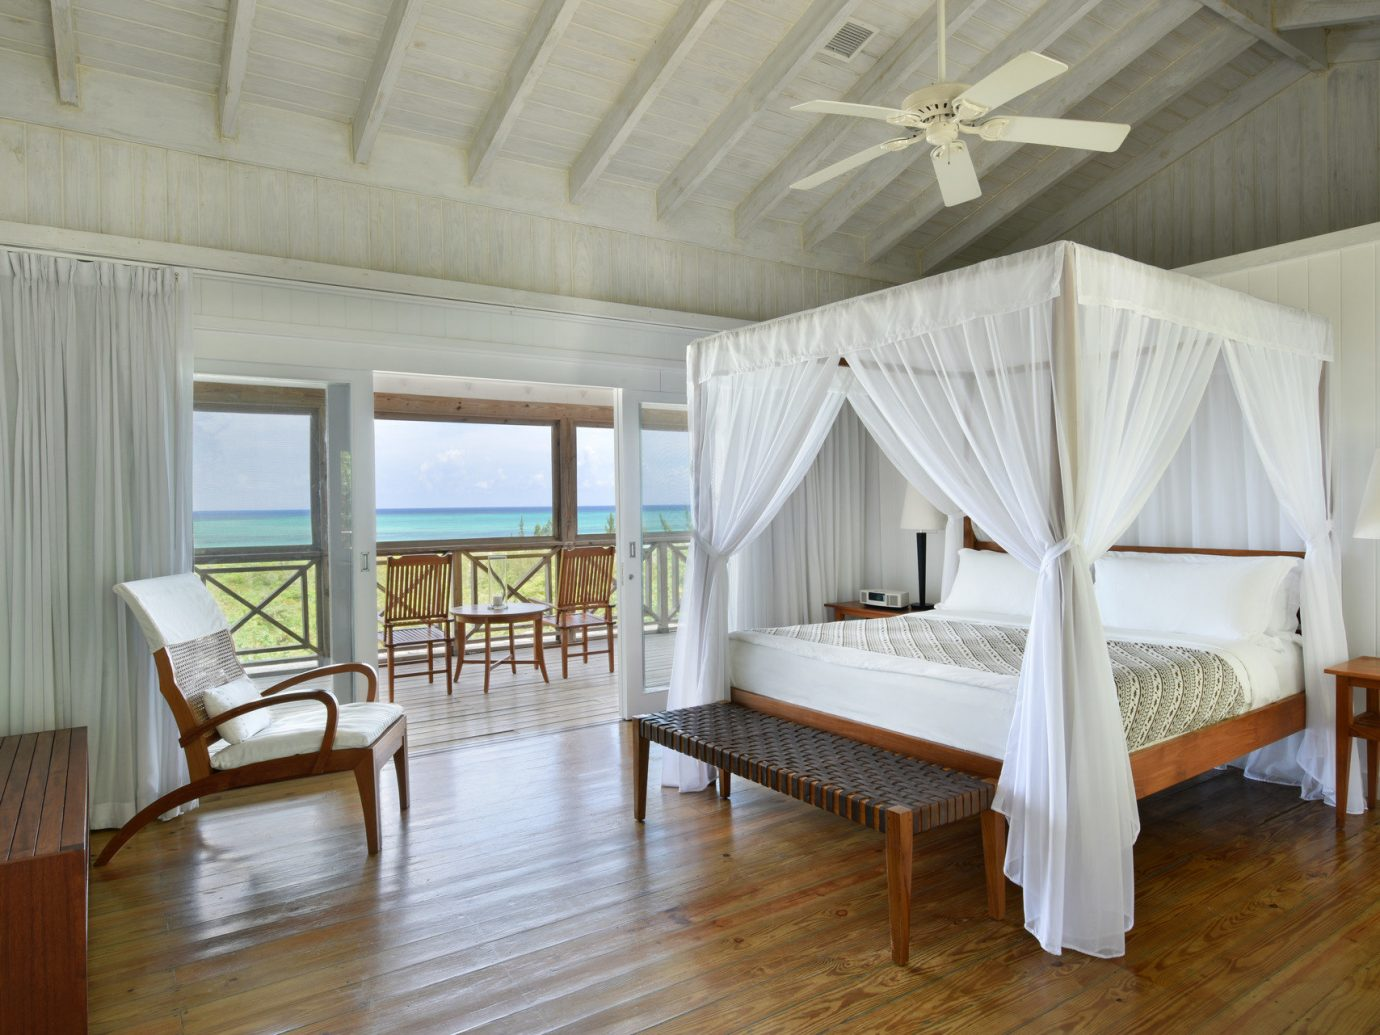 Bedroom At All-Inclusive Como Parrot Cay In Turks And Caicos